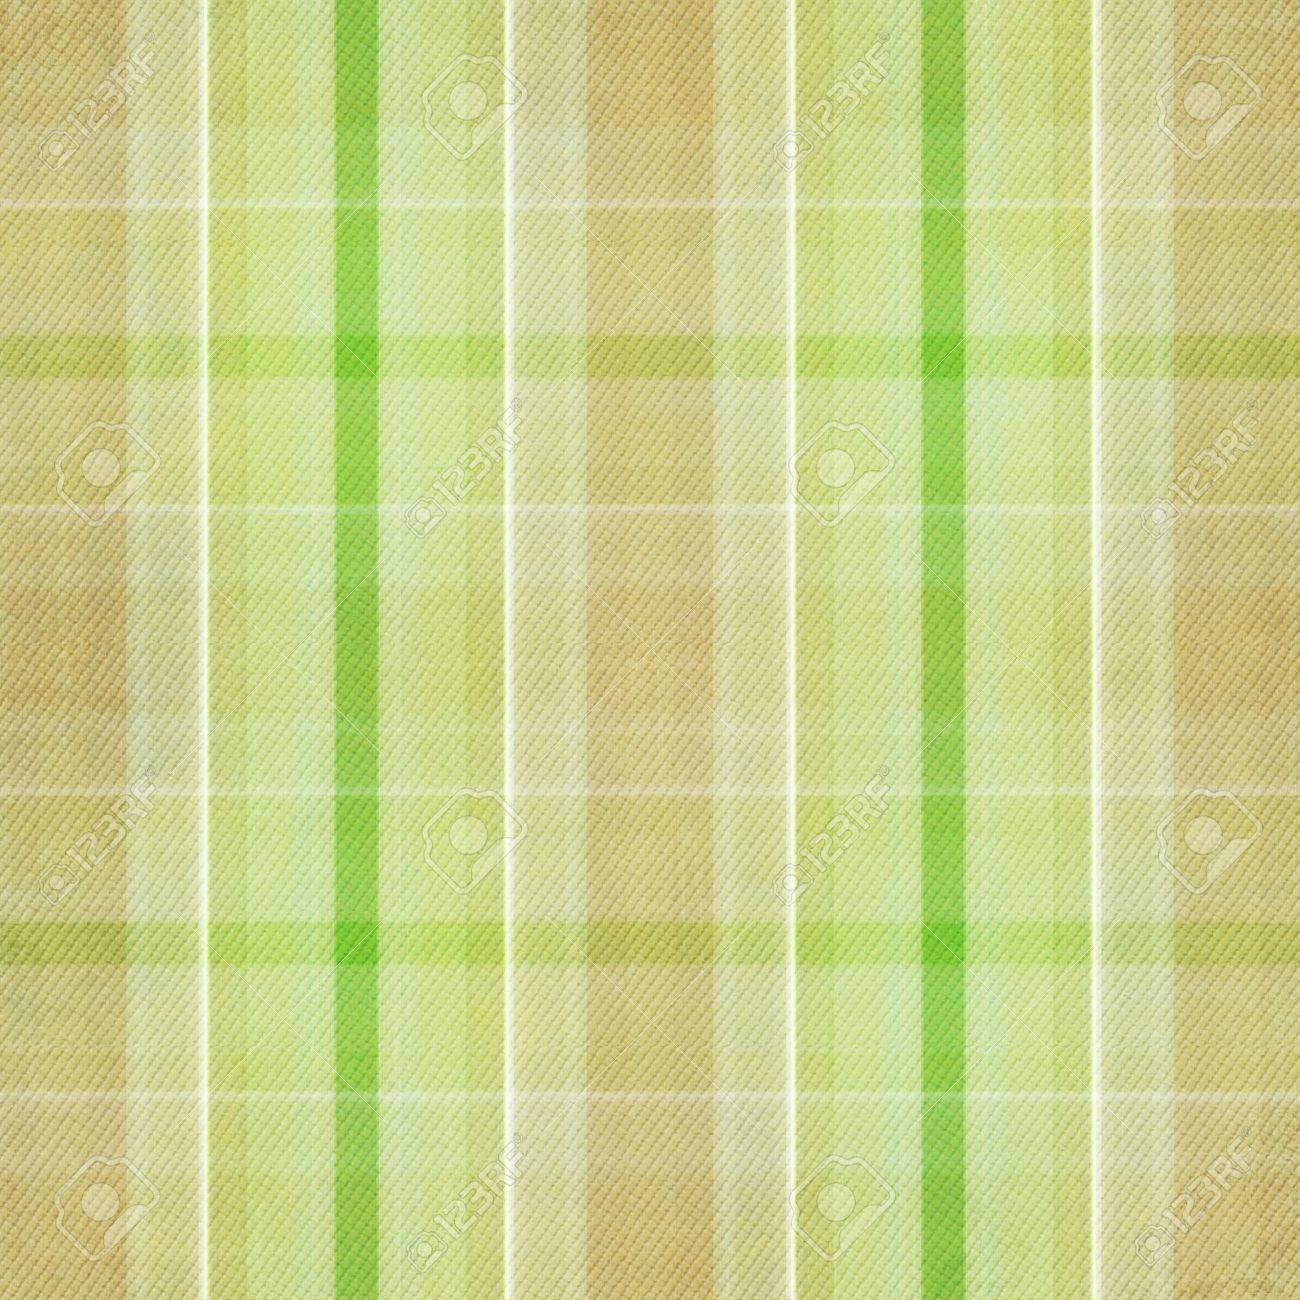 green and brown pastel  seamless plaid pattern Stock Photo - 11024096